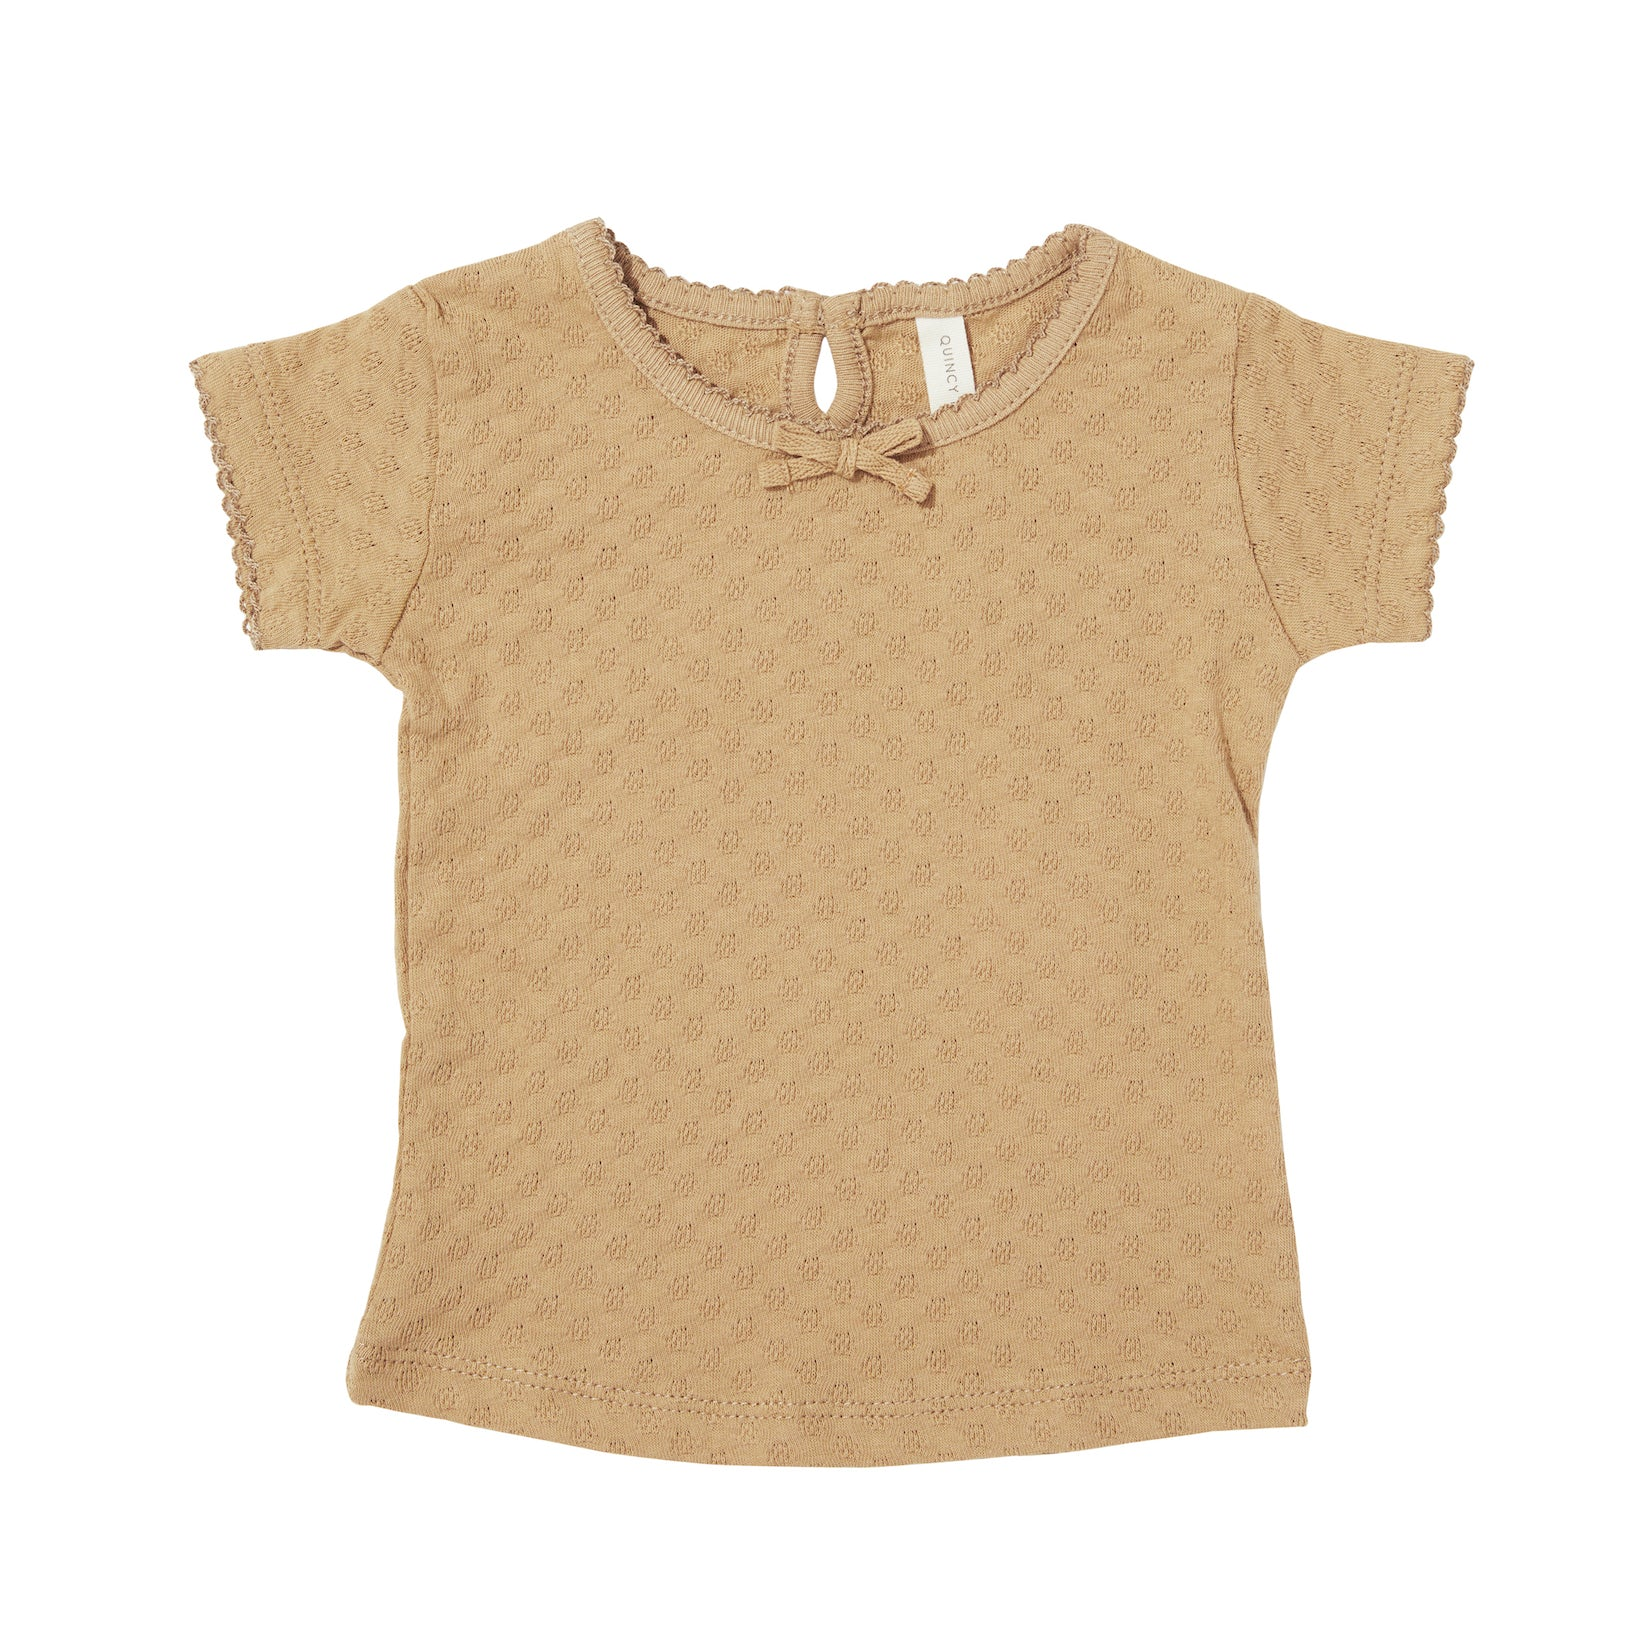 Quincy Mae organic cotton pointelle shortsleeve tee - honey